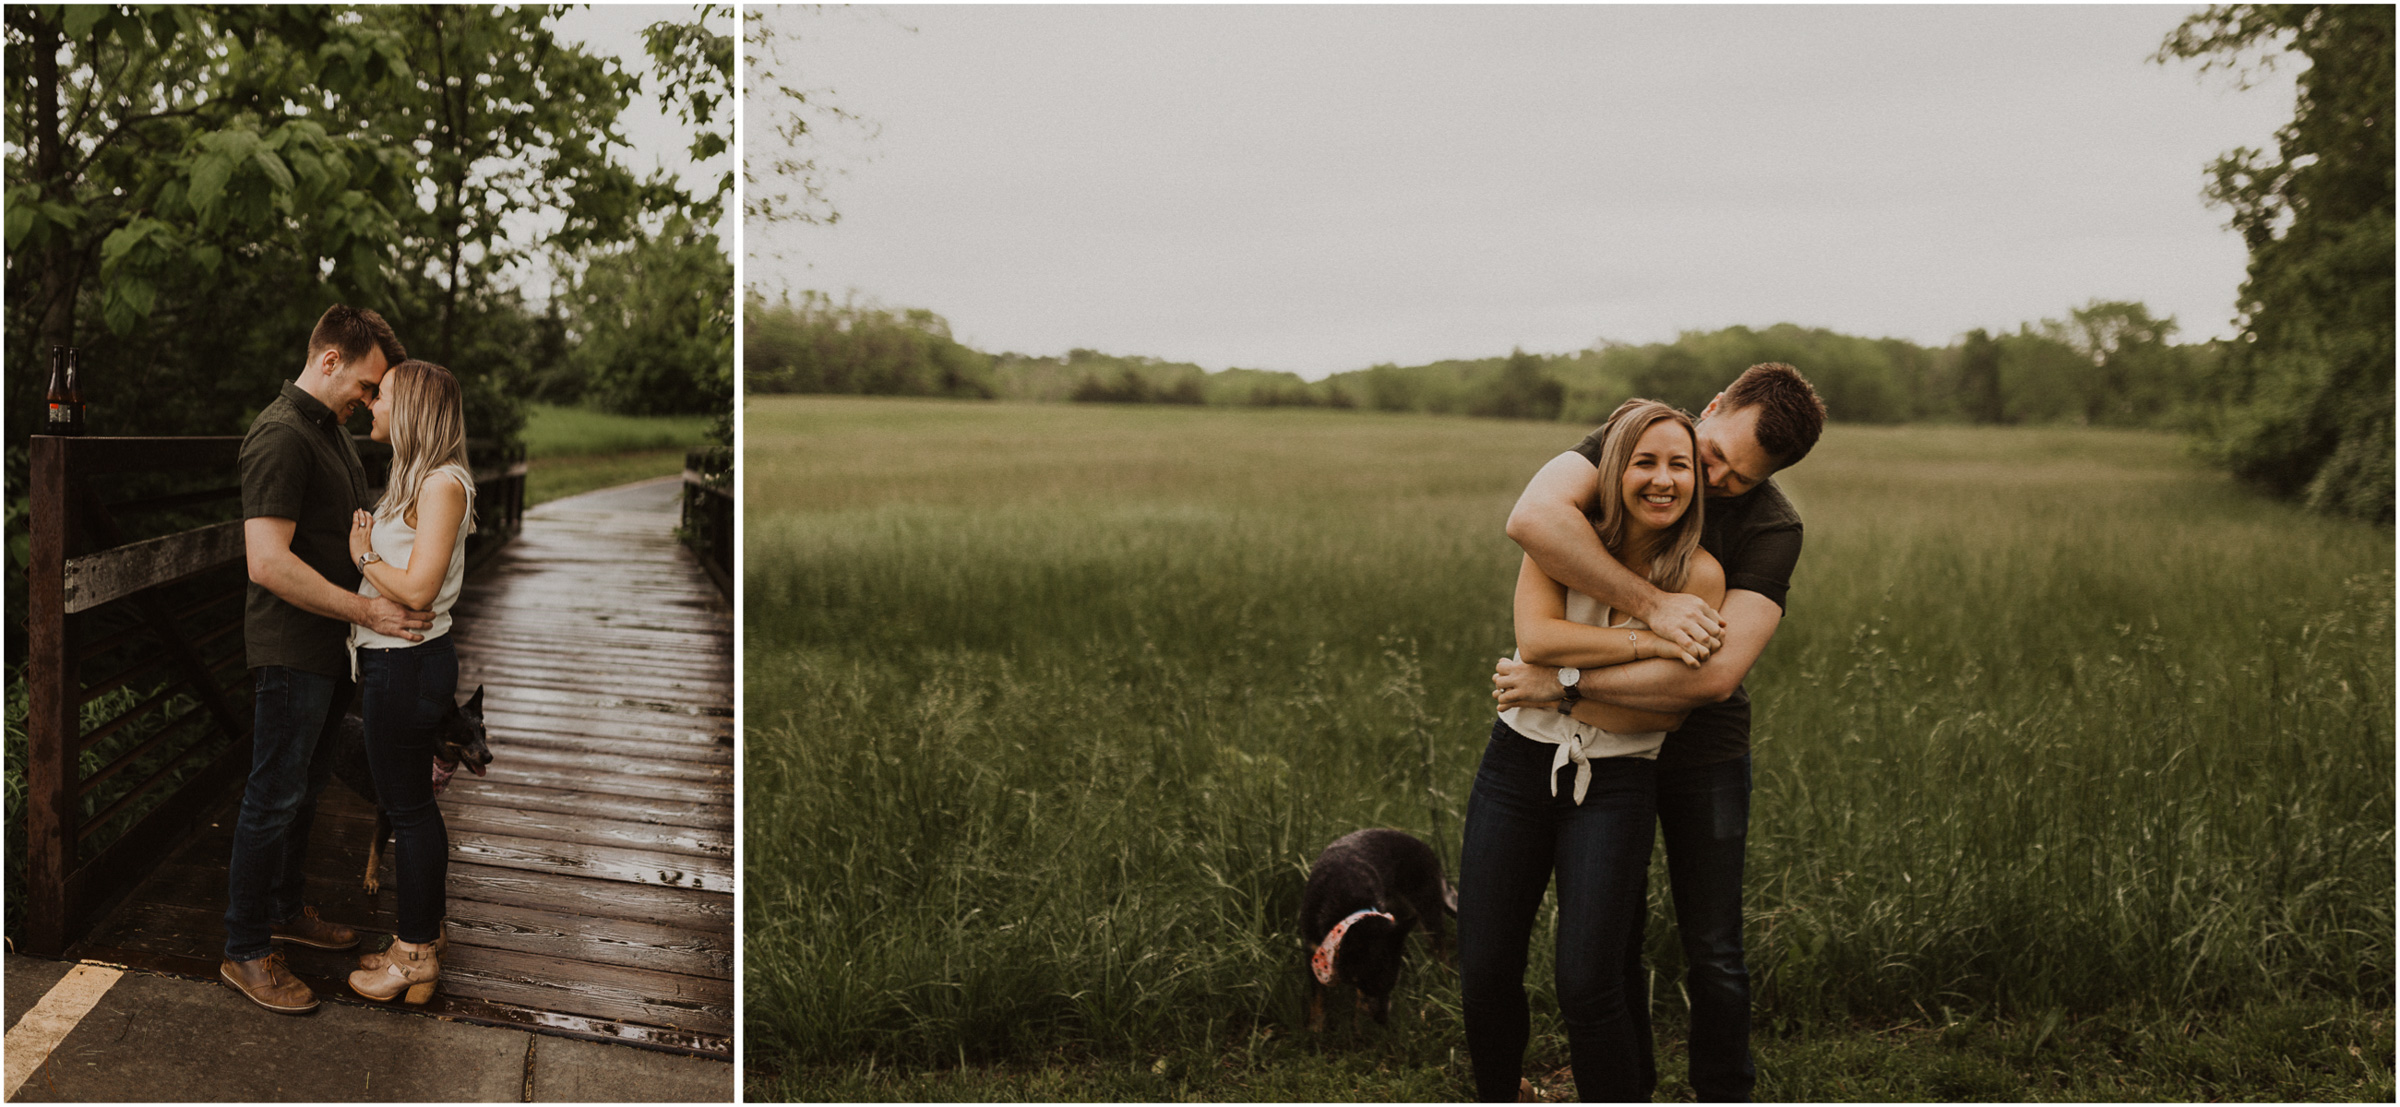 alyssa barletter photography shawnee mission park engagement session photographer sunset-10.jpg